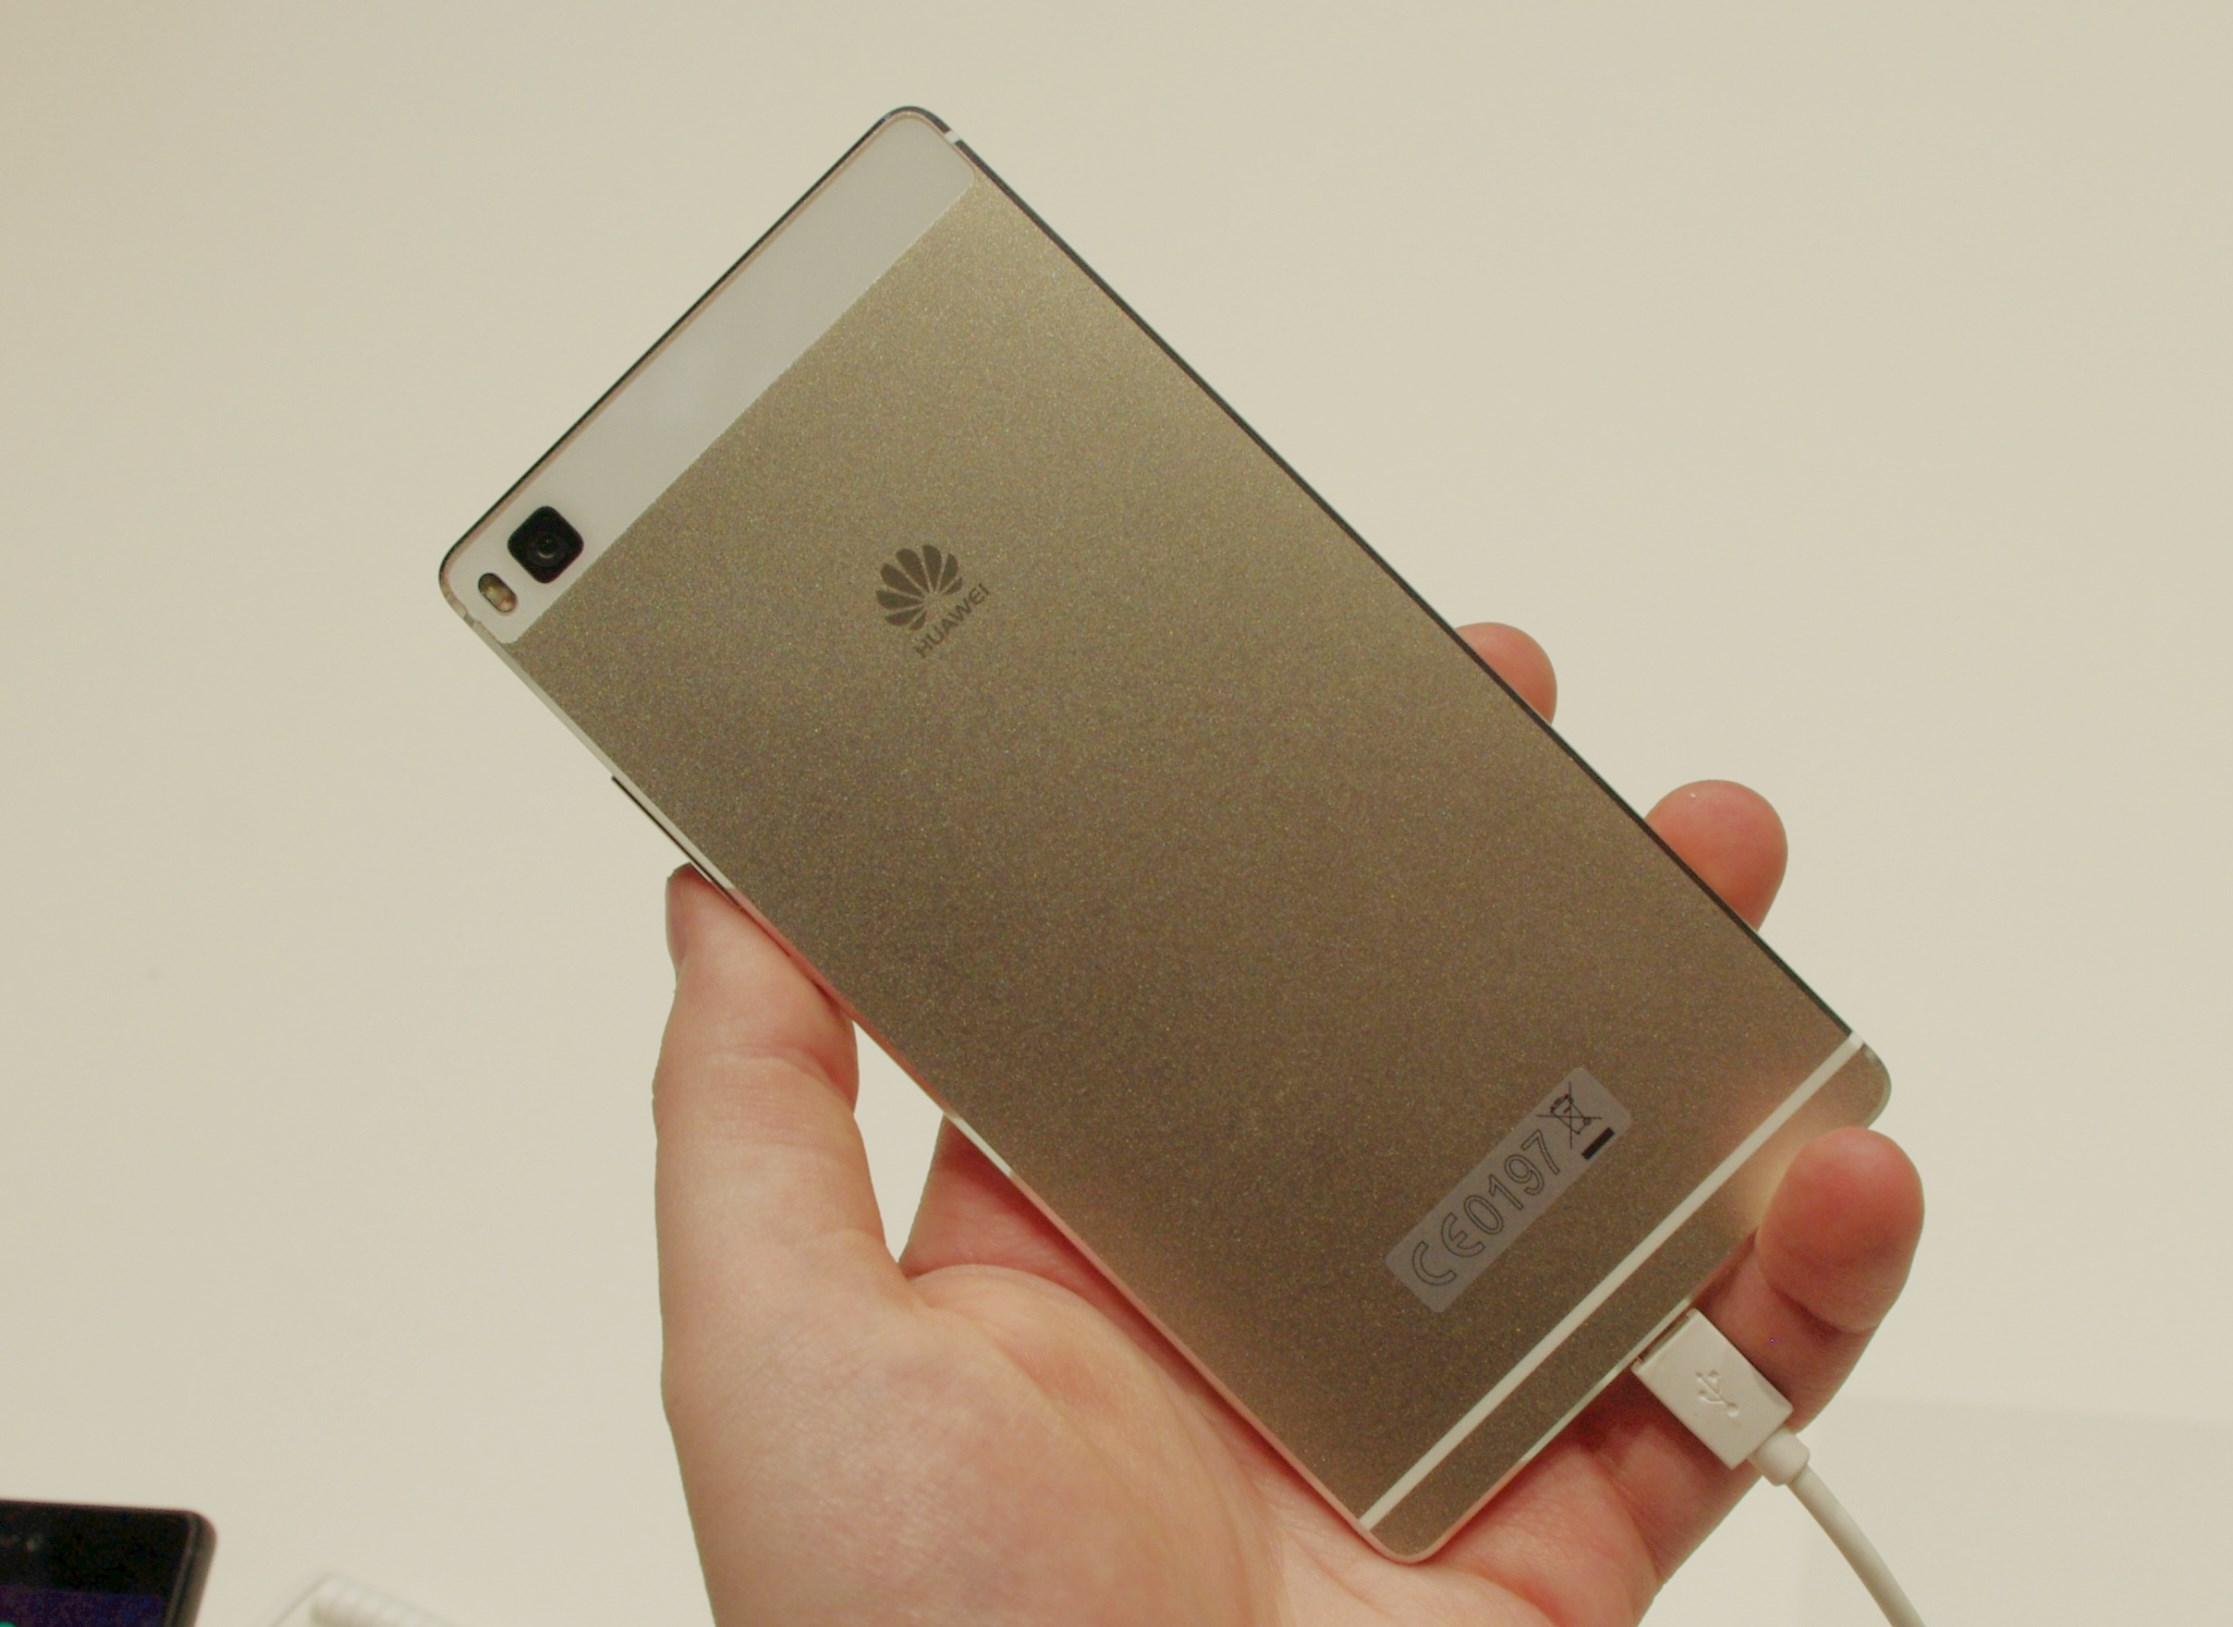 Huawei Announces New P8 And P8 Max